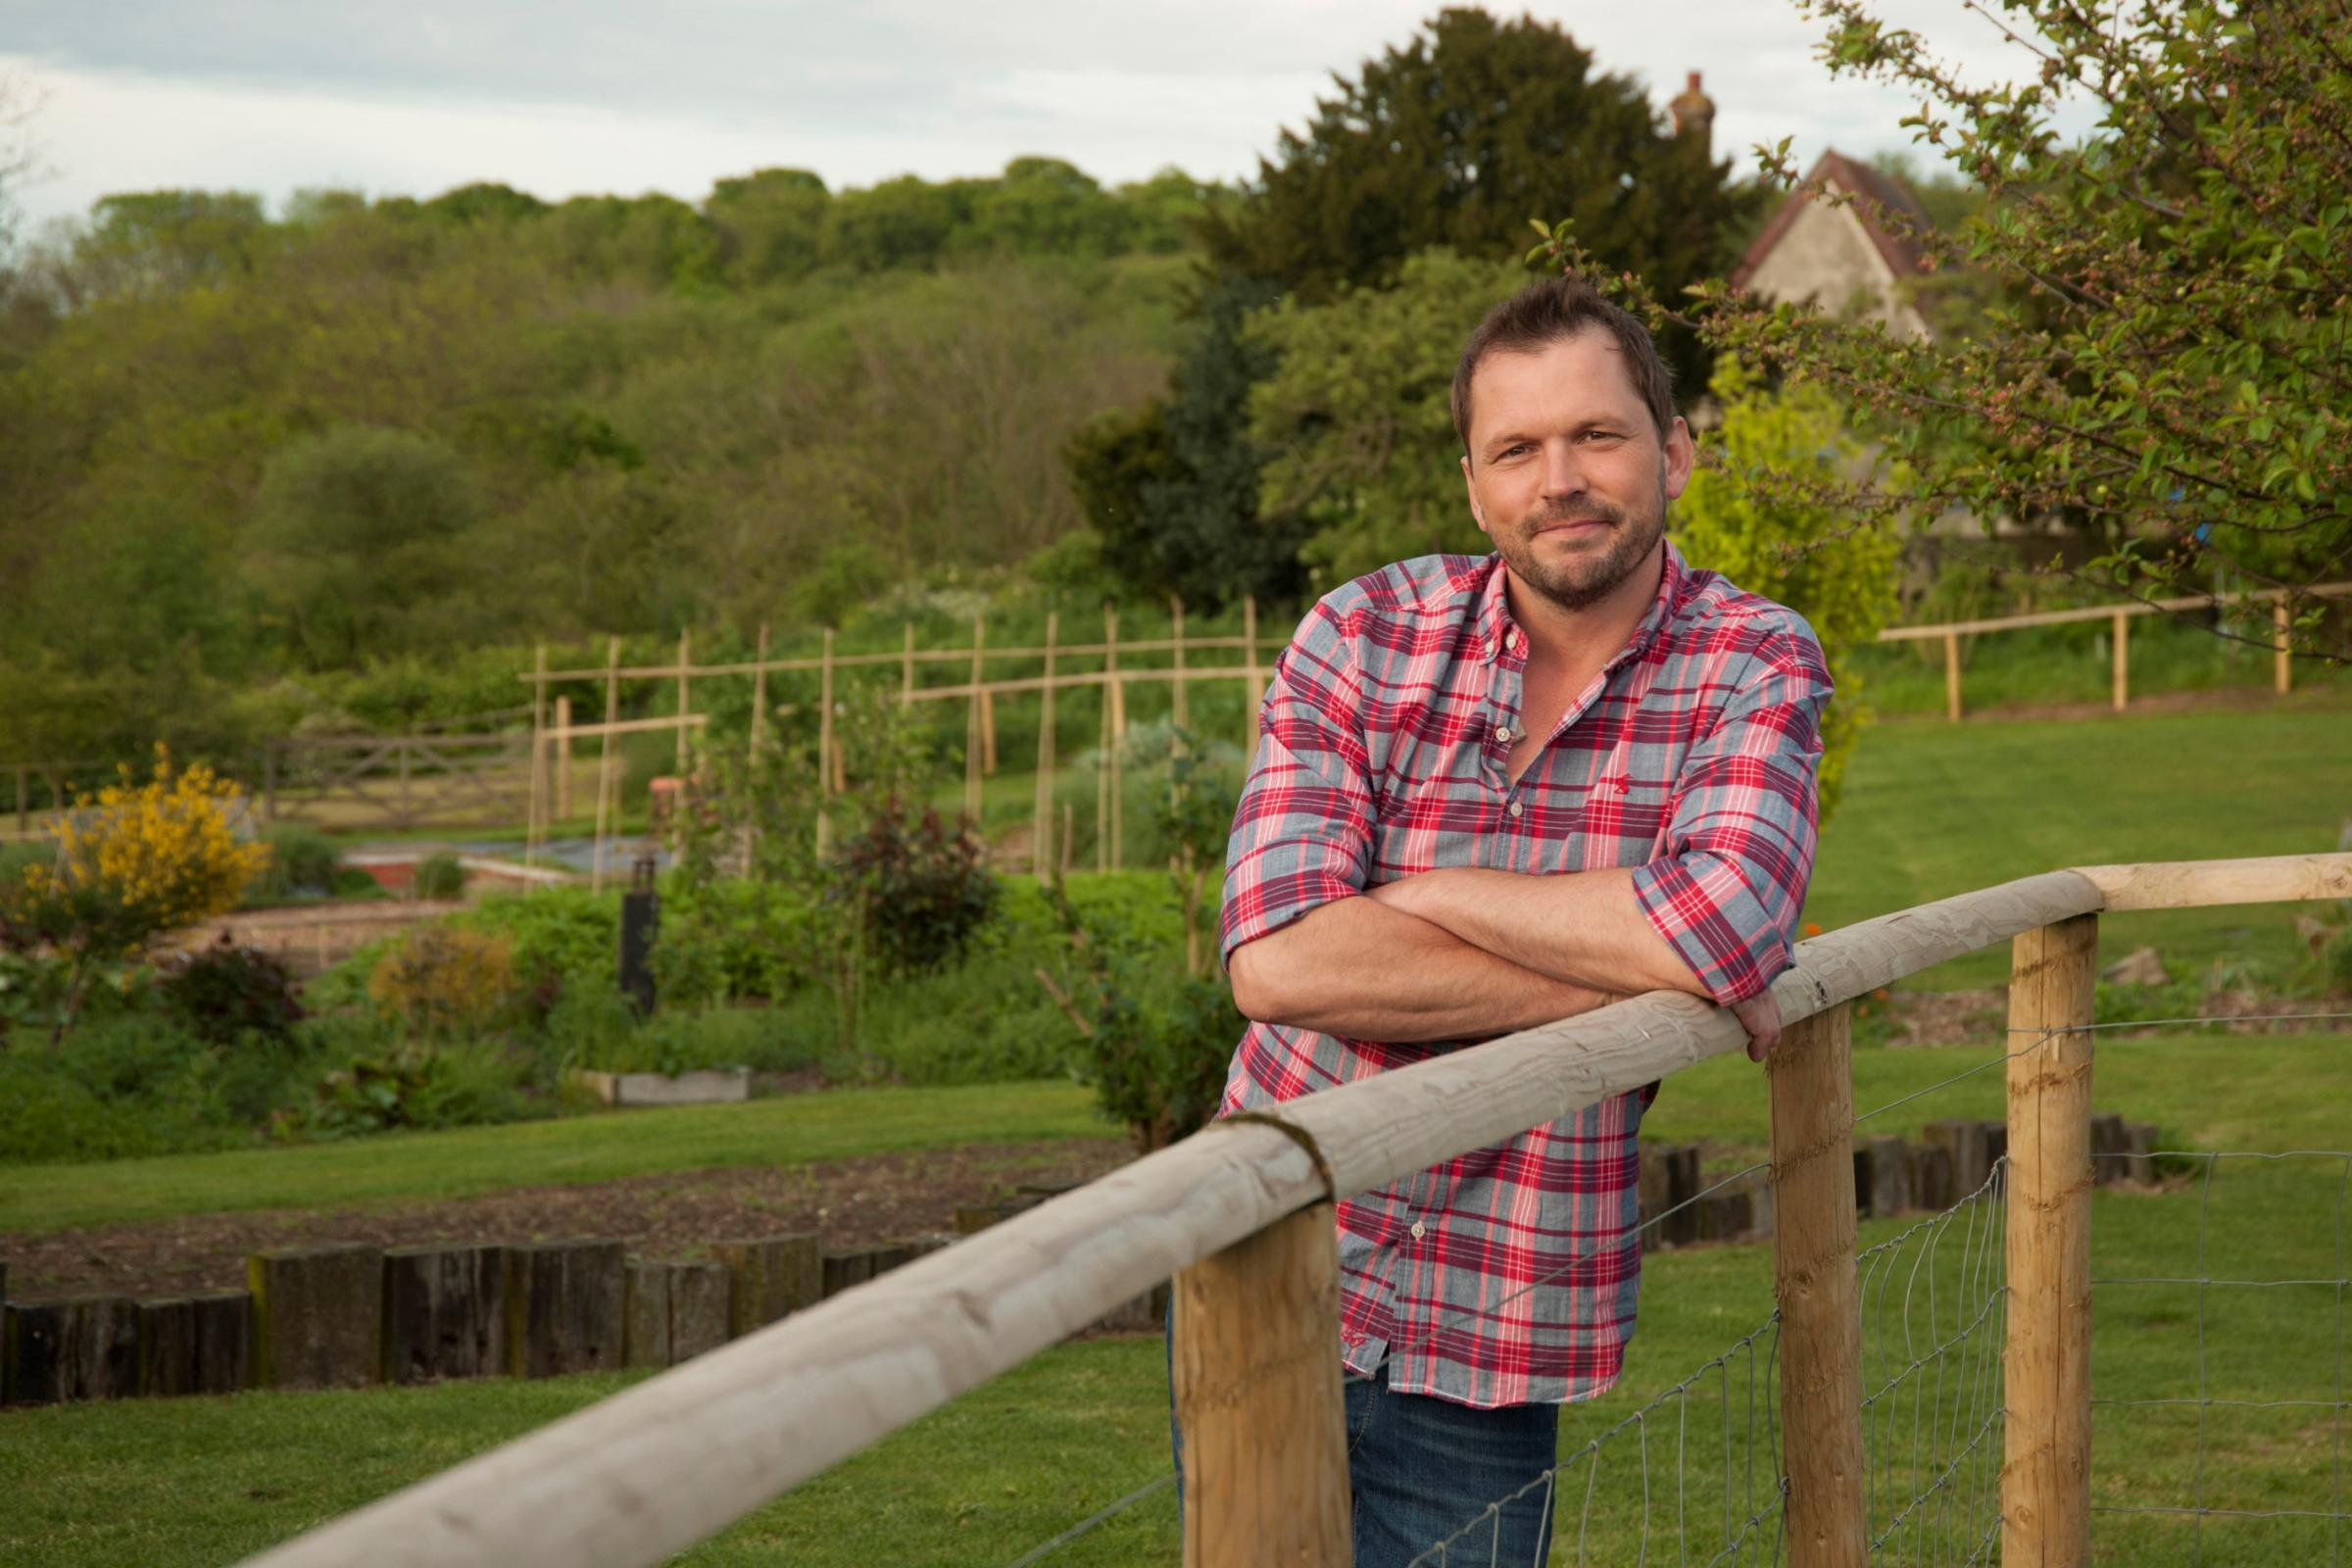 Jimmy Doherty announced as 'small farms ambassador' for NFU Mutual